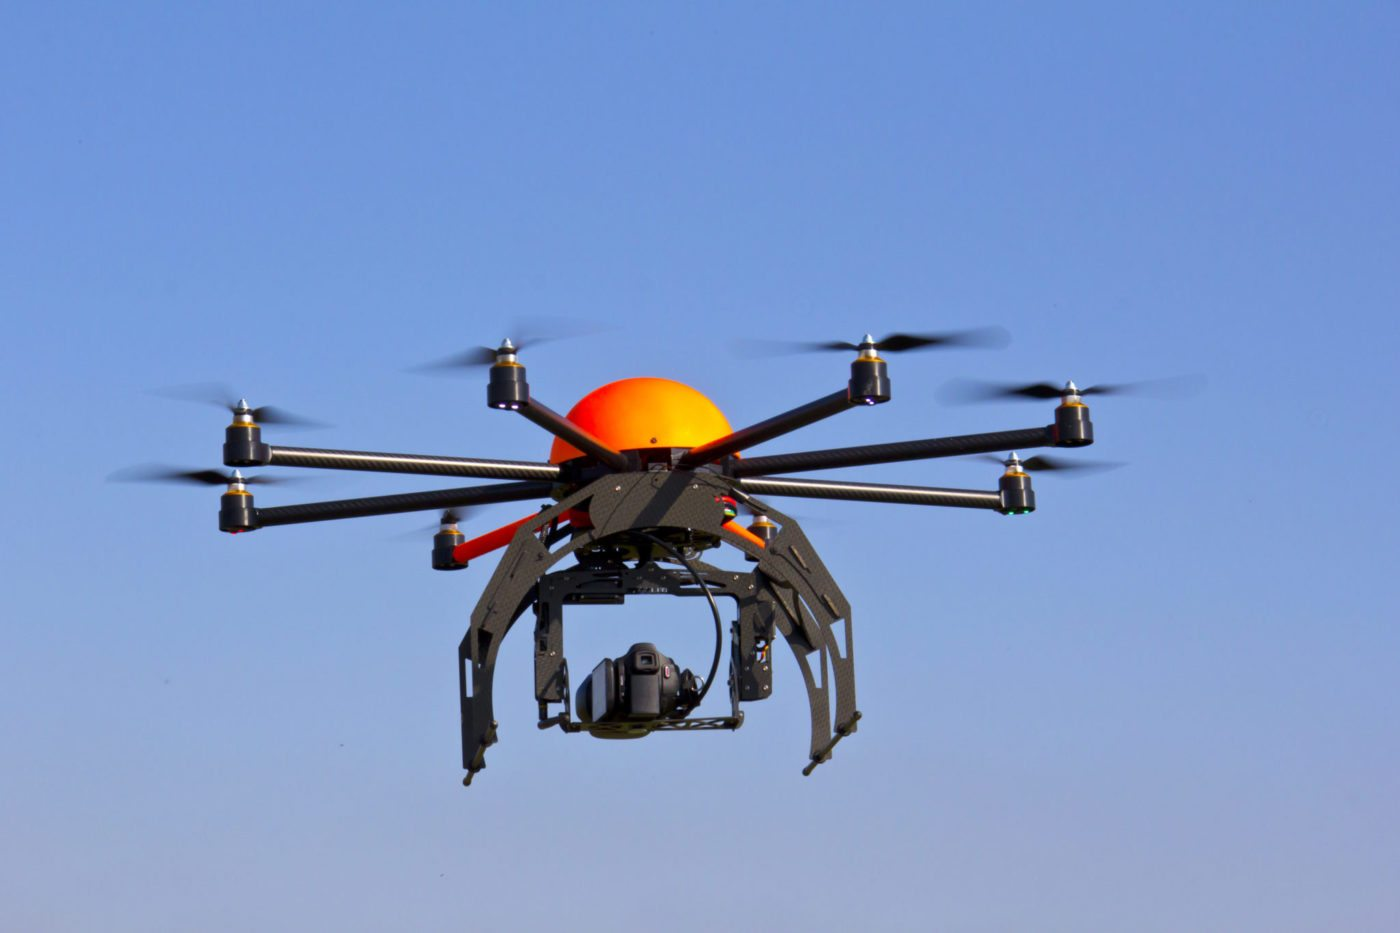 The drones are coming to Real Estate Connect New York City